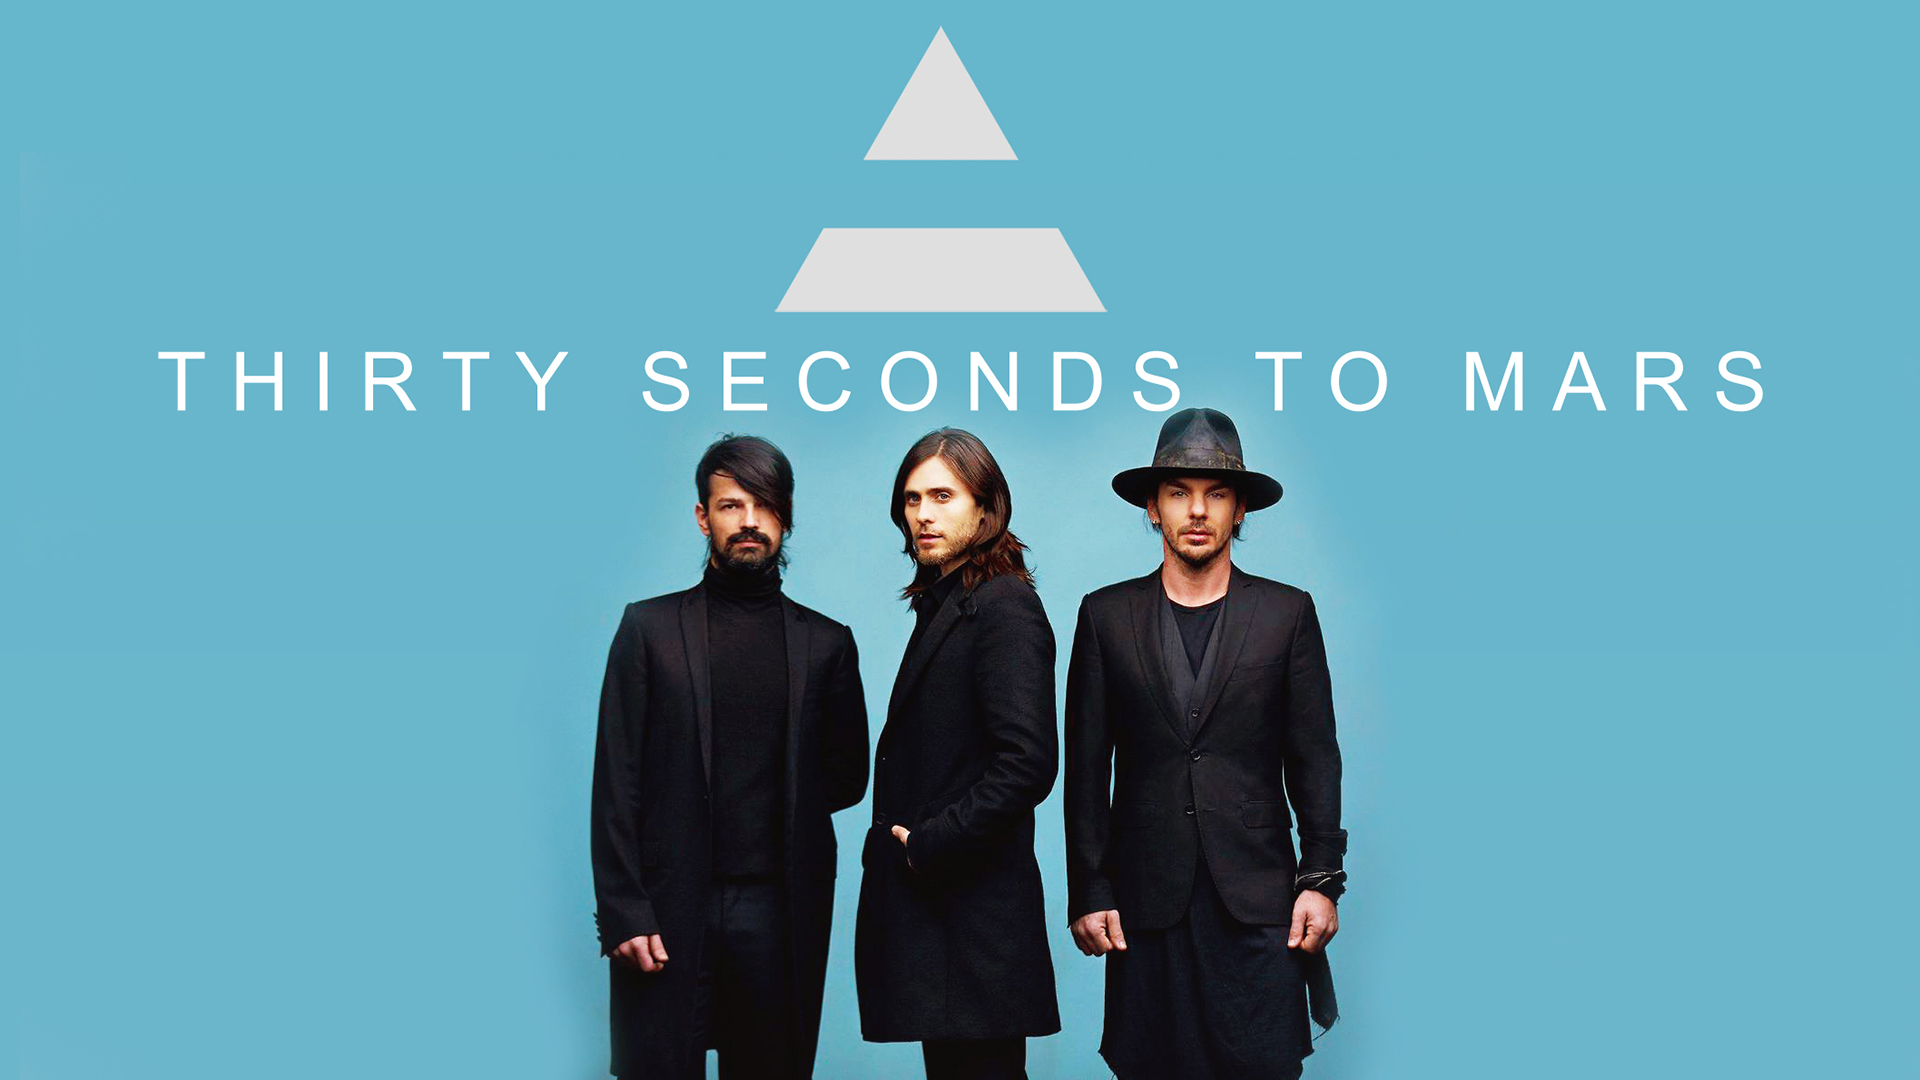 30 Seconds to Mars Jared Leto wallpaper | 1920x1080 ...